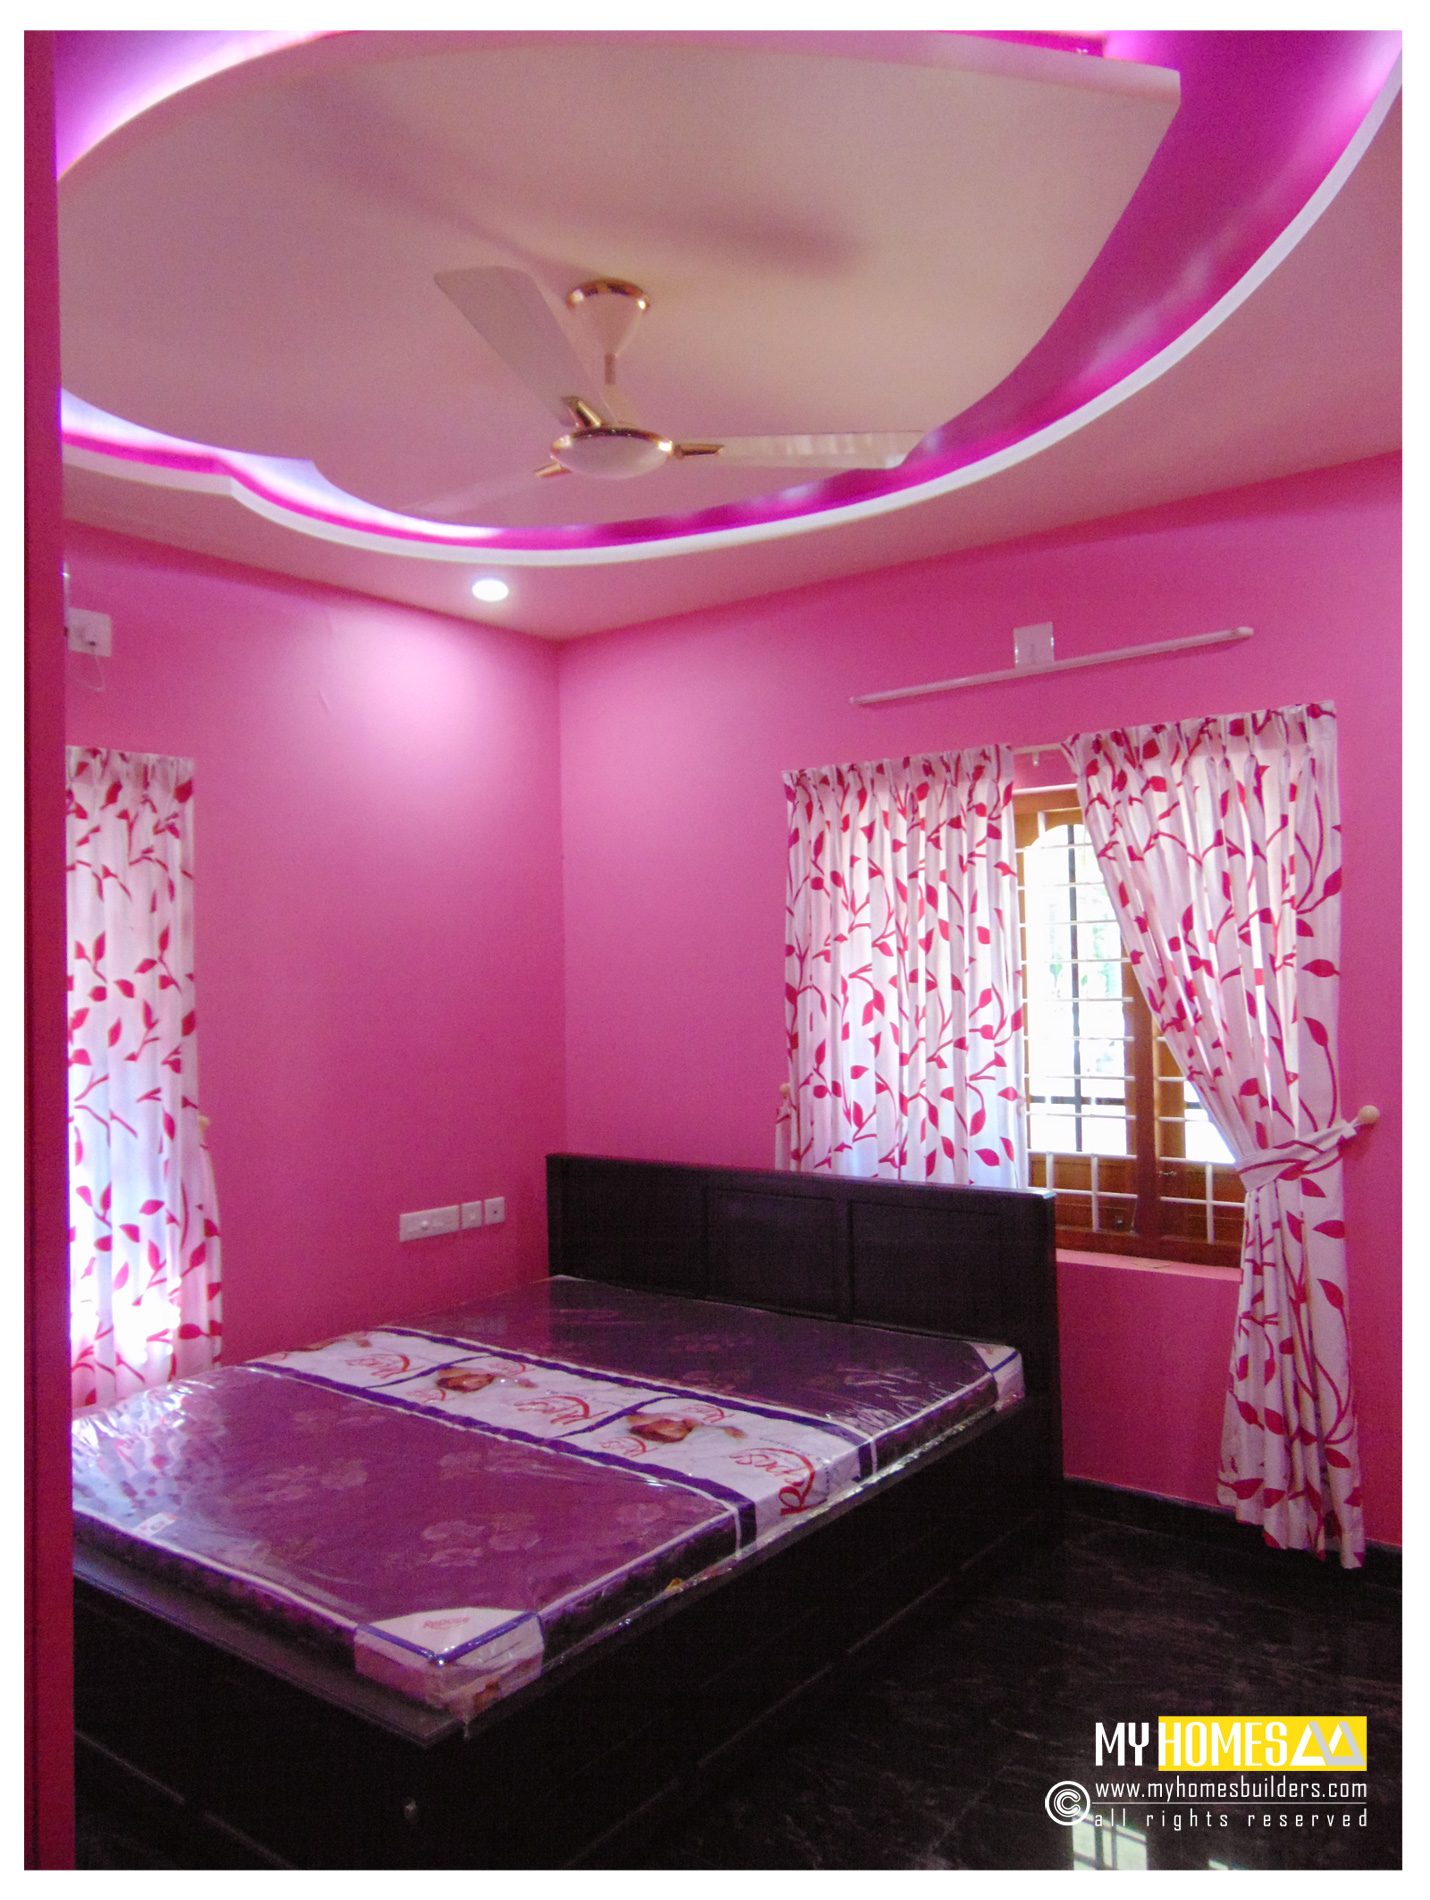 Simple style kerala bedroom designs ideas for home interior for Style of bedroom designs